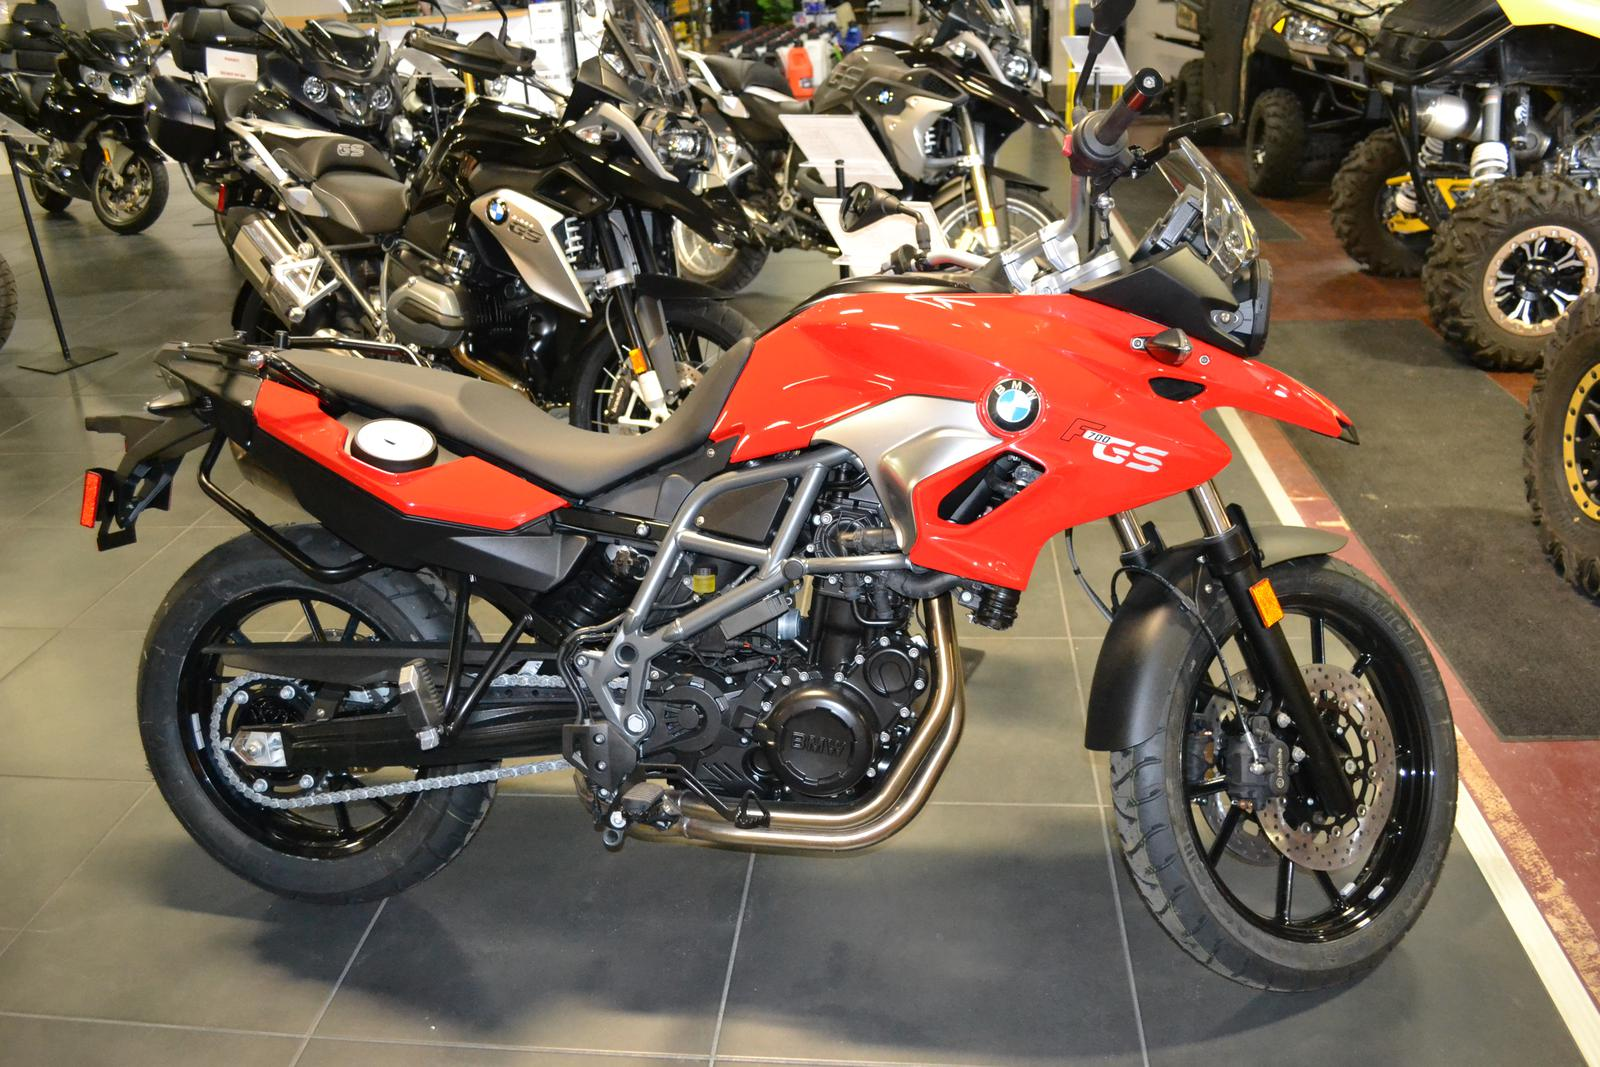 2017 bmw f700gs for sale in vancouver, wa | bmw motorcycles of